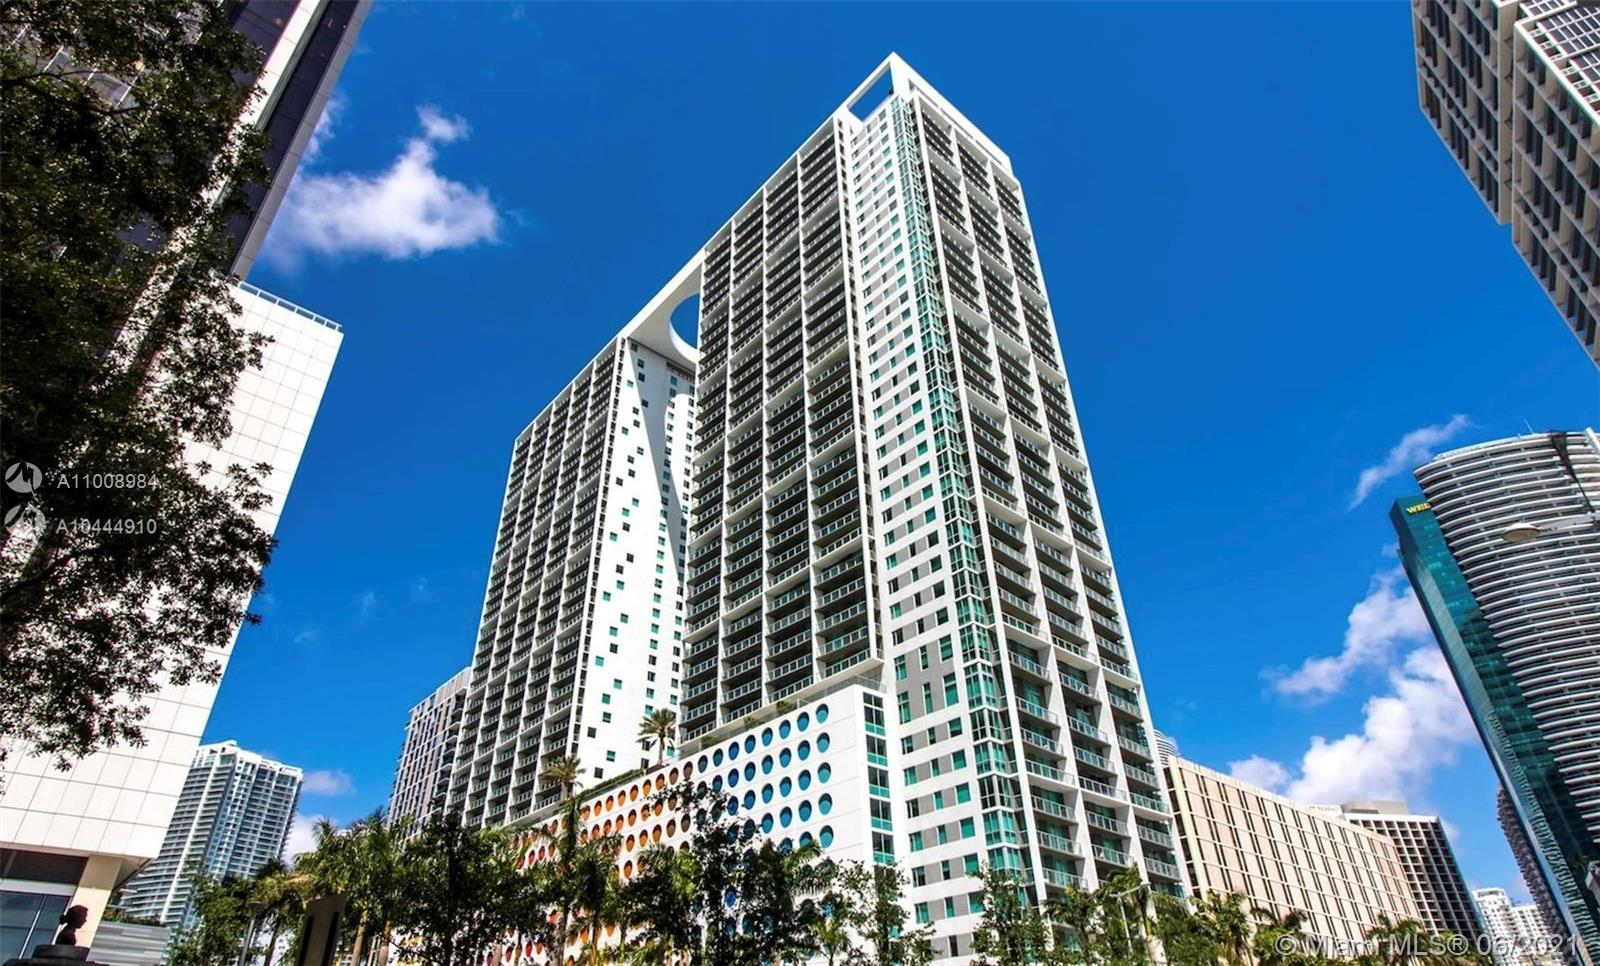 500 Brickell West Tower #2407 - 500 Brickell Ave #2407, Miami, FL 33131